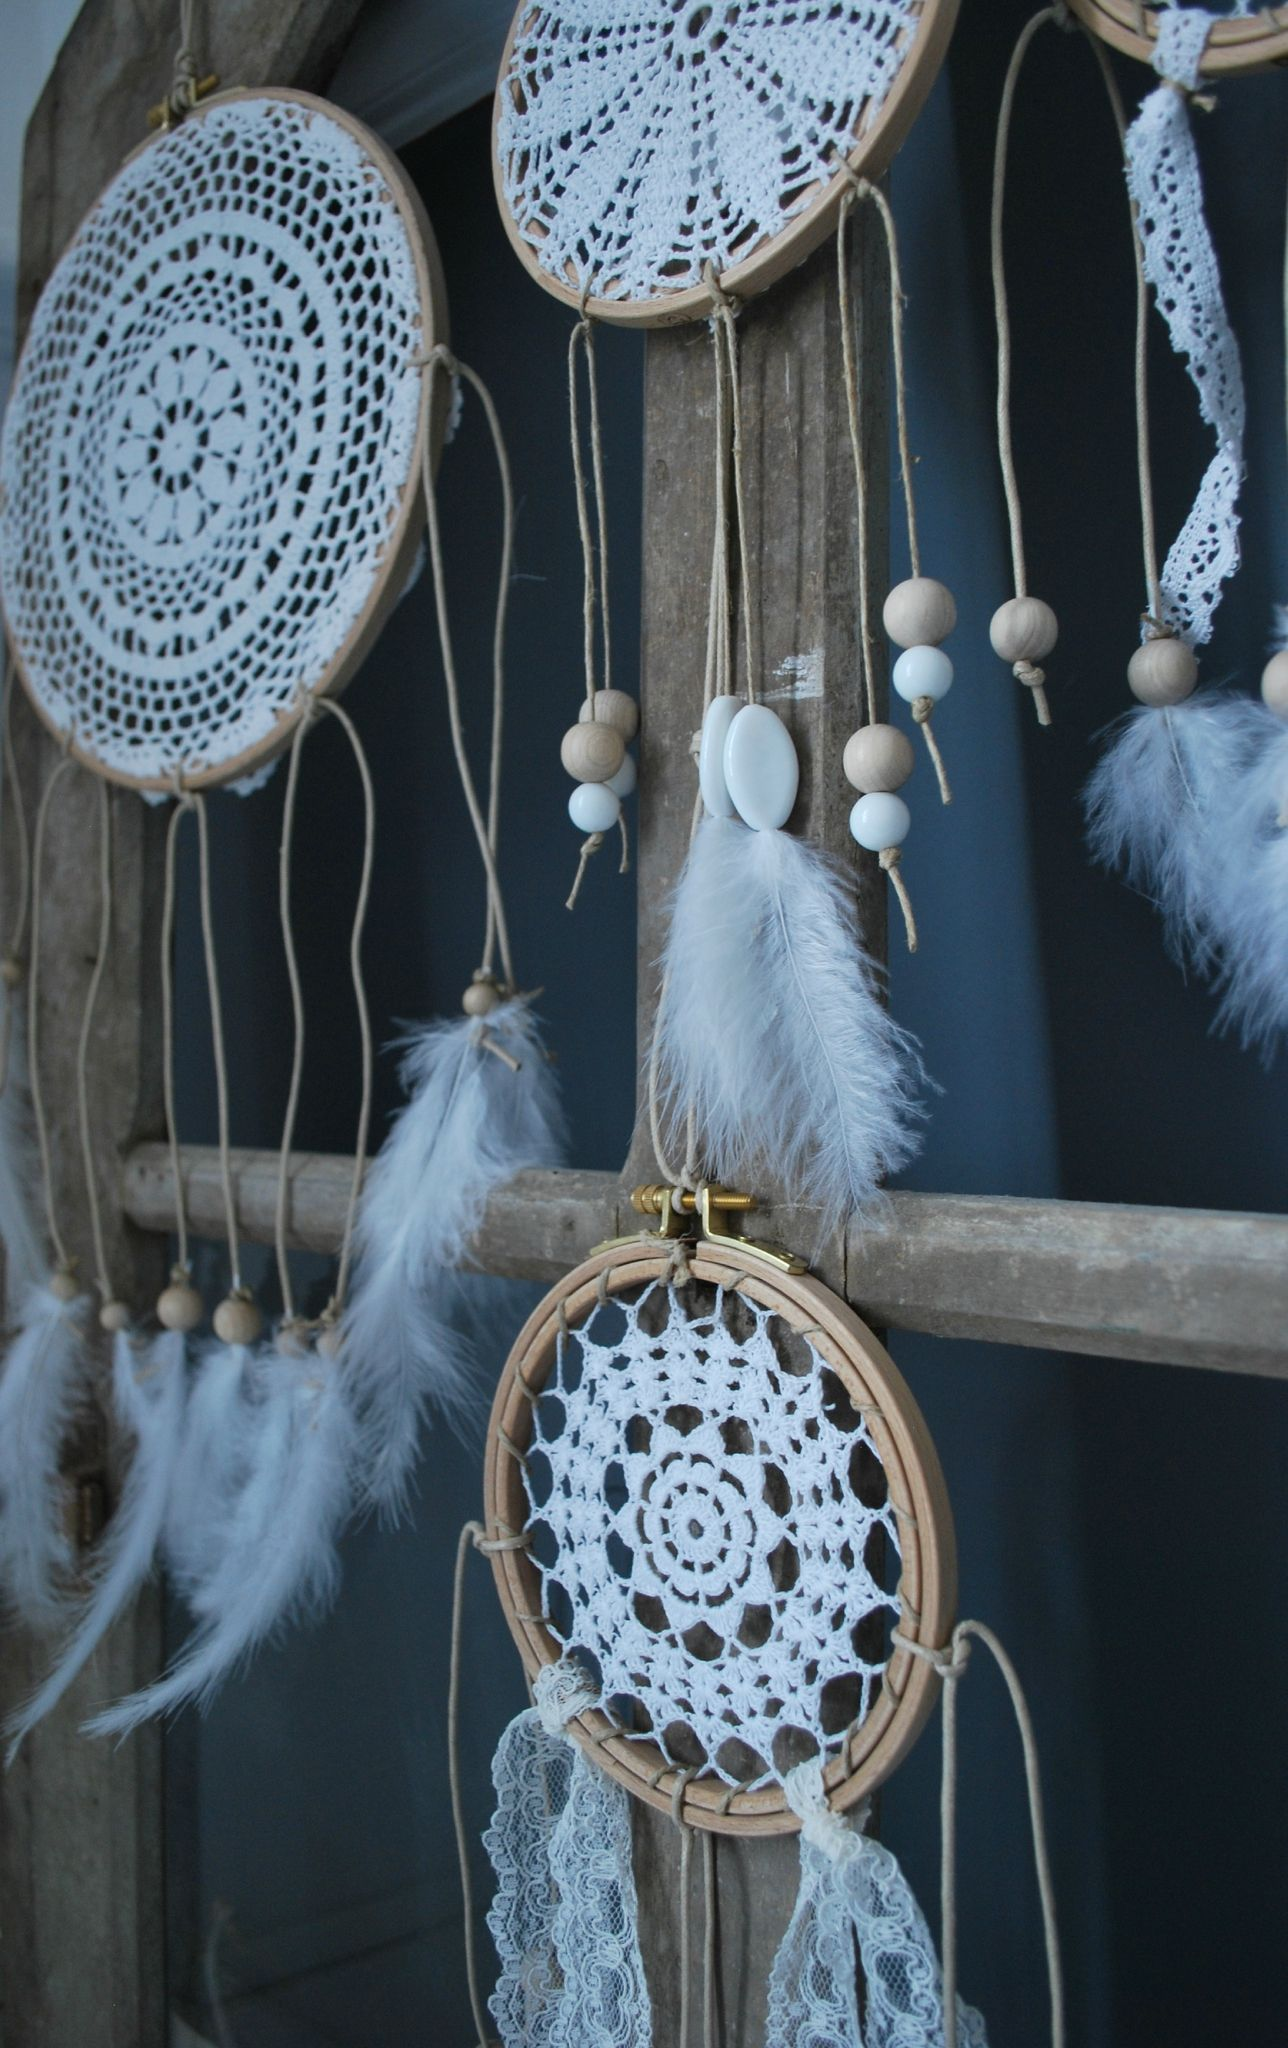 dream catcher napperon crochet tambour broder rubans dentelles perles plumes et. Black Bedroom Furniture Sets. Home Design Ideas